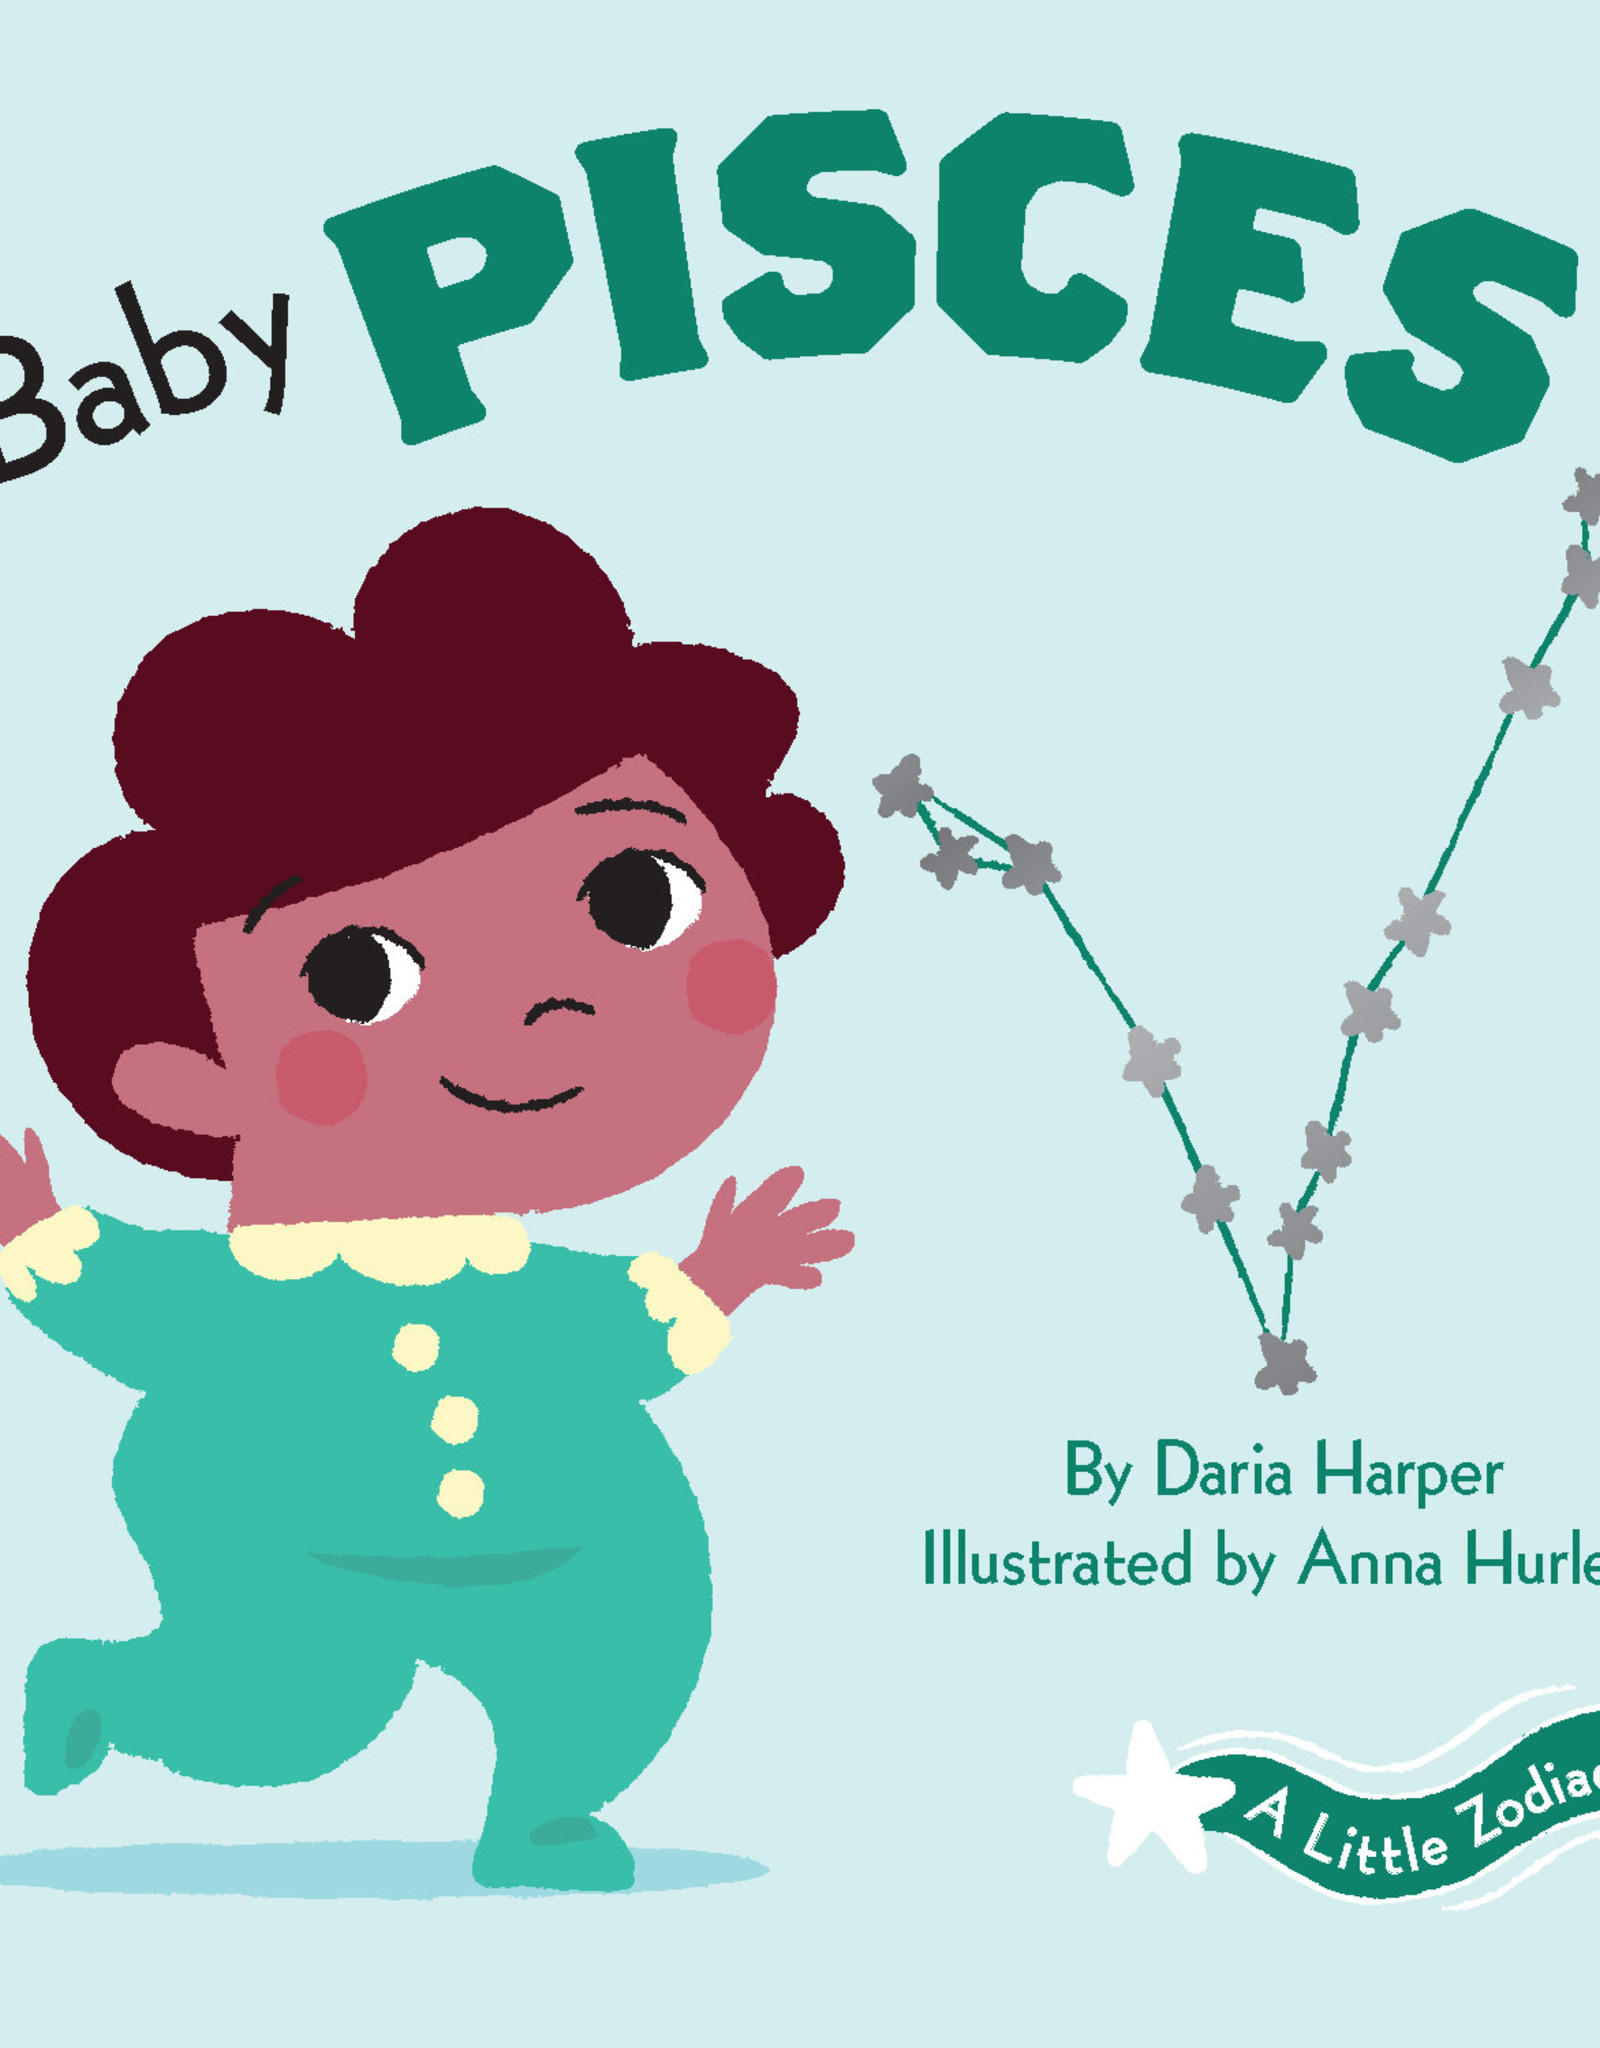 Chronicle Books A Little Zodiac Book: Baby Pisces